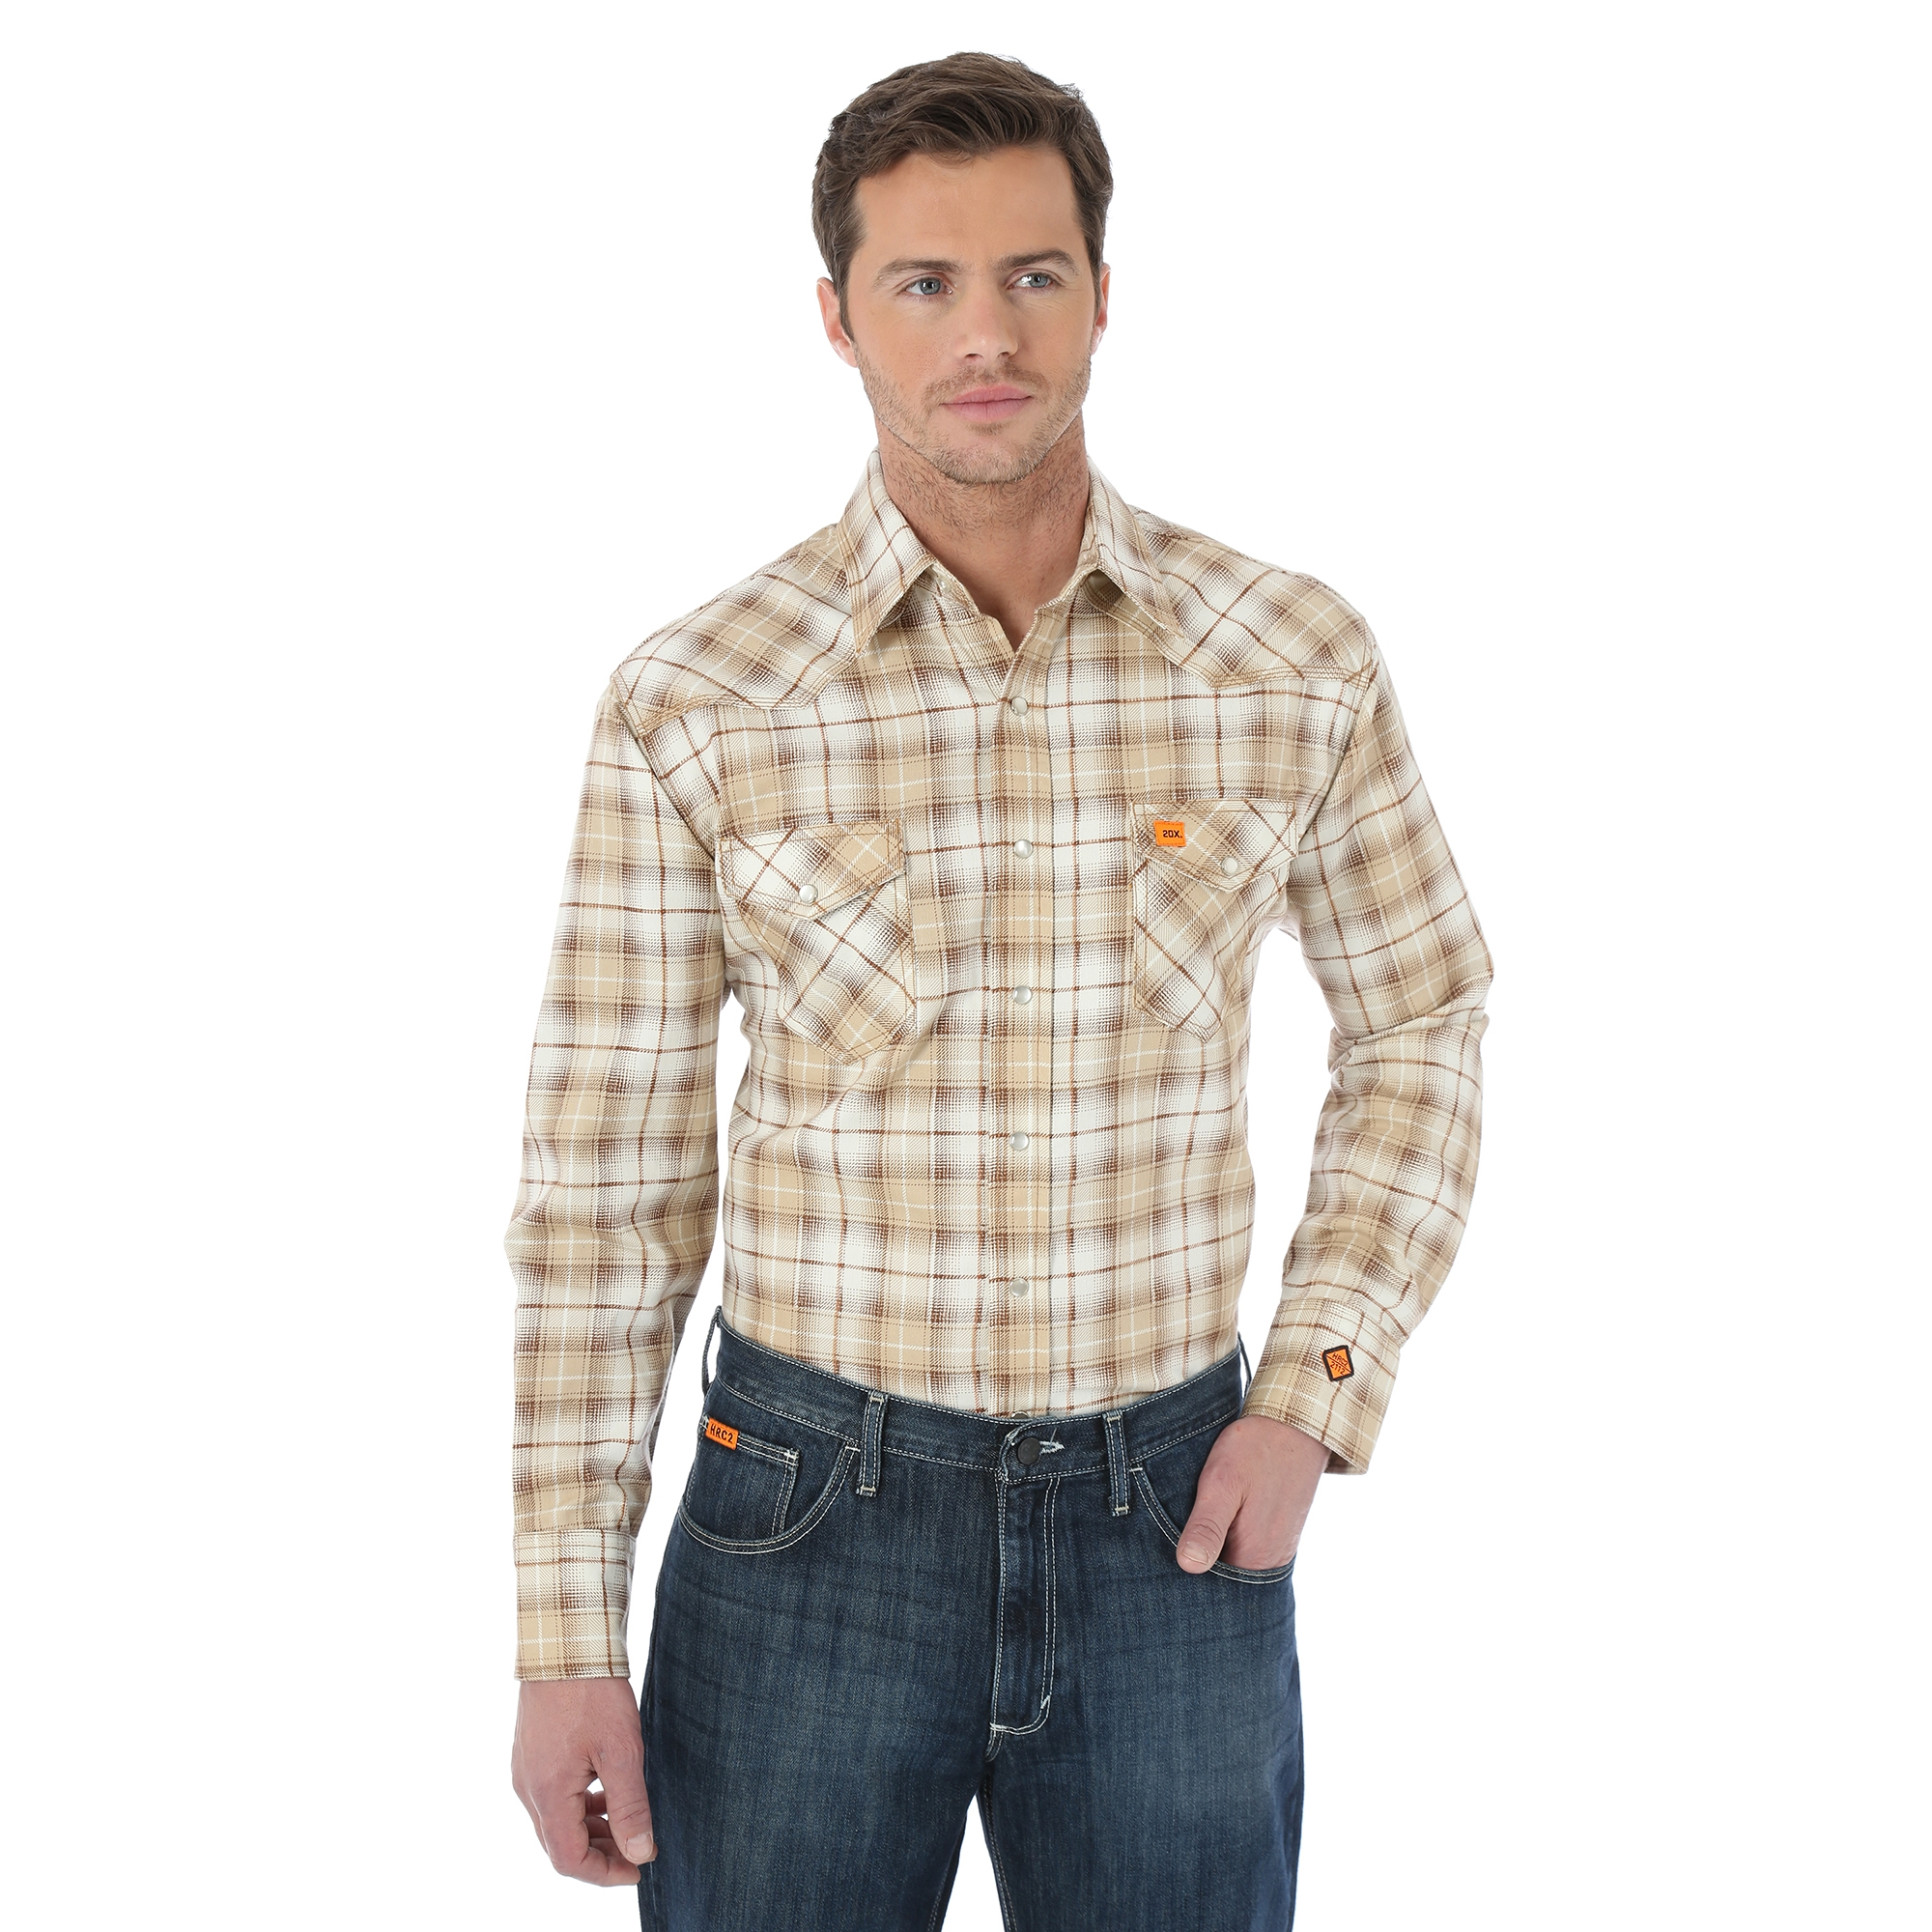 WRANGLER® FLAME RESISTANT 20X® LONG SLEEVE WORK SHIRT- Khaki Plaid-Wrangler FR